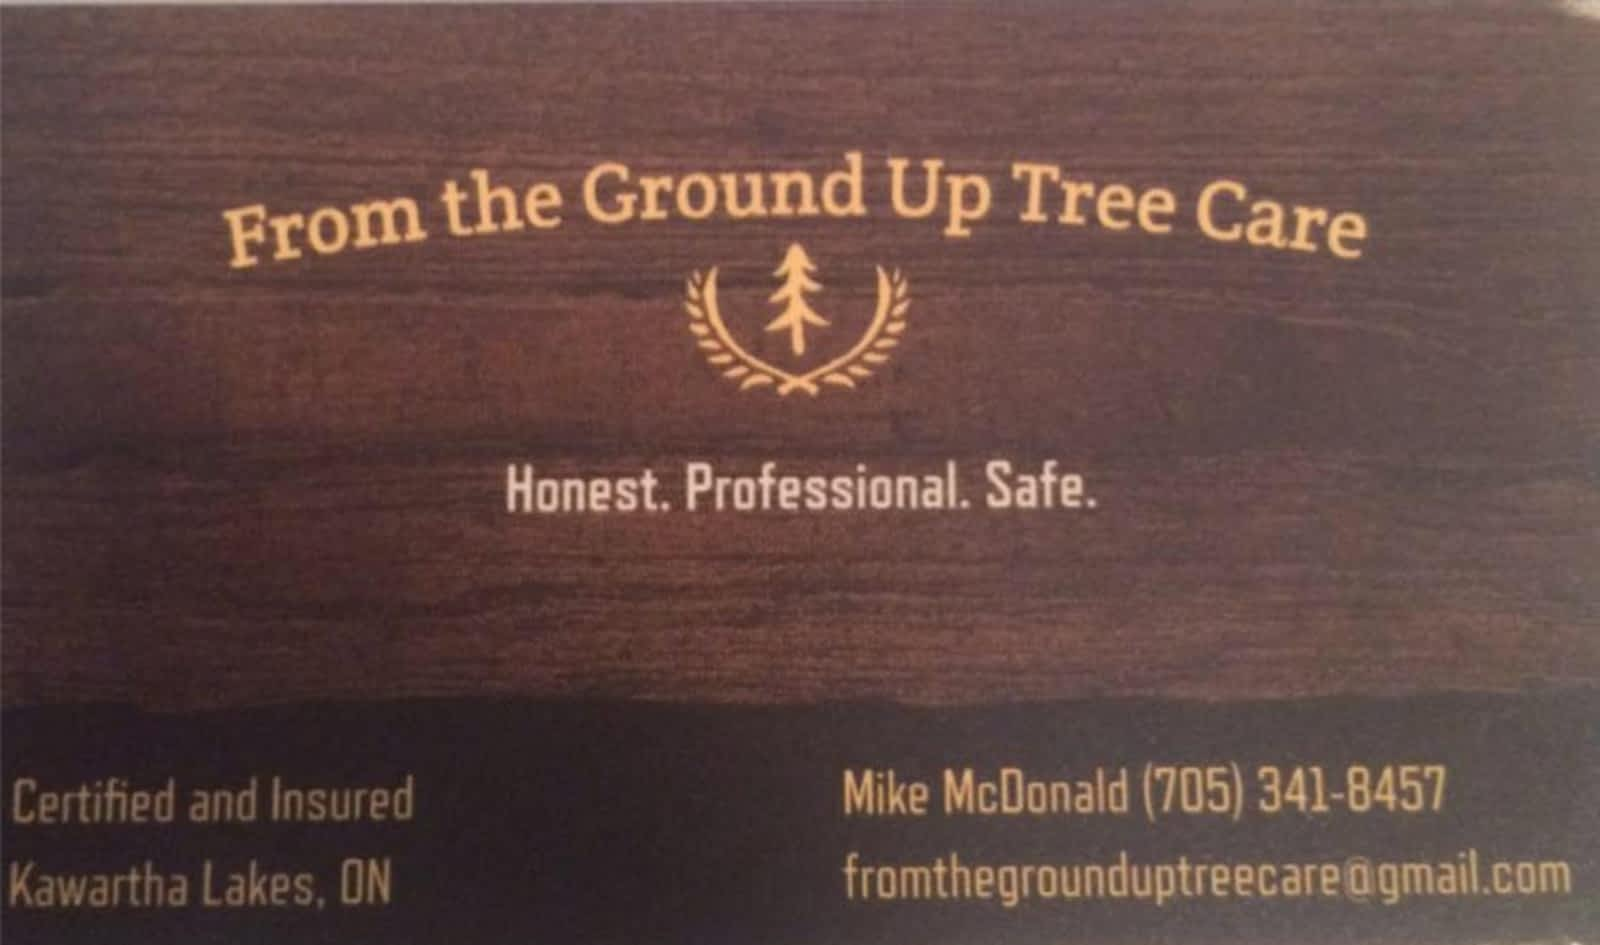 From The Ground Up from the ground up tree care - opening hours - lindsay, on